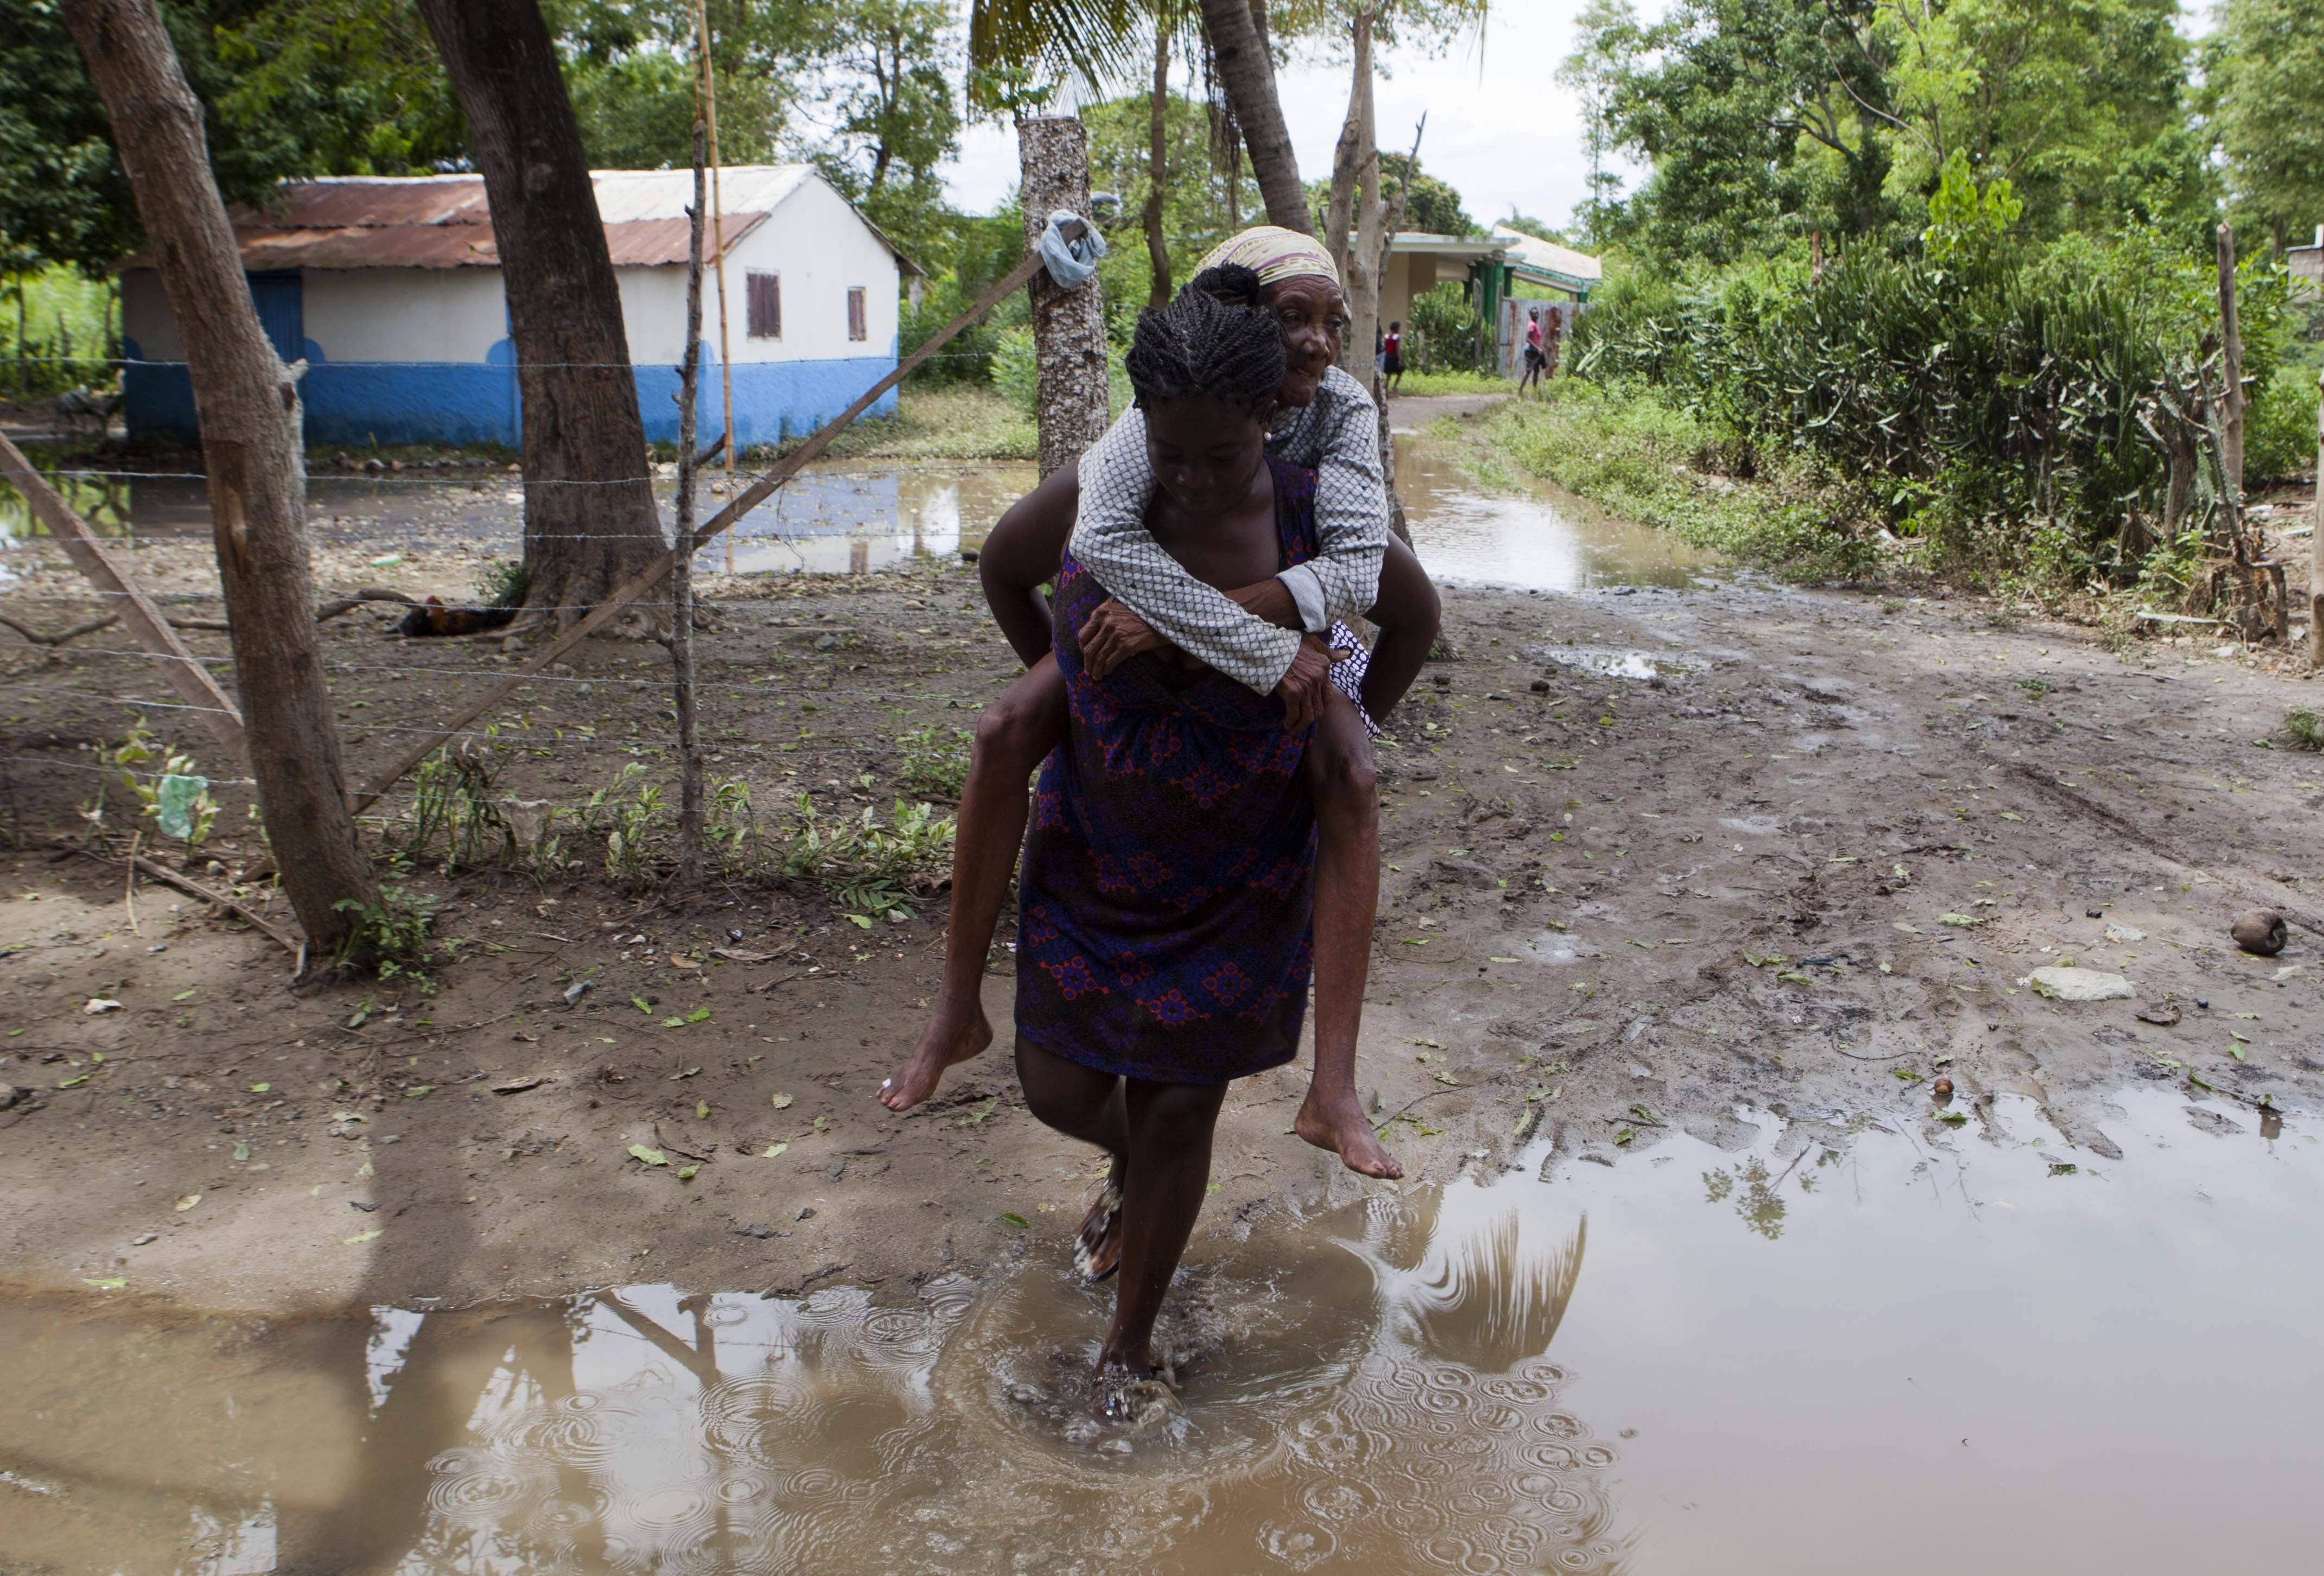 A woman carries her grandmother away from a flooded home after Hurricane Irma passed through Haiti on its way to Florida.